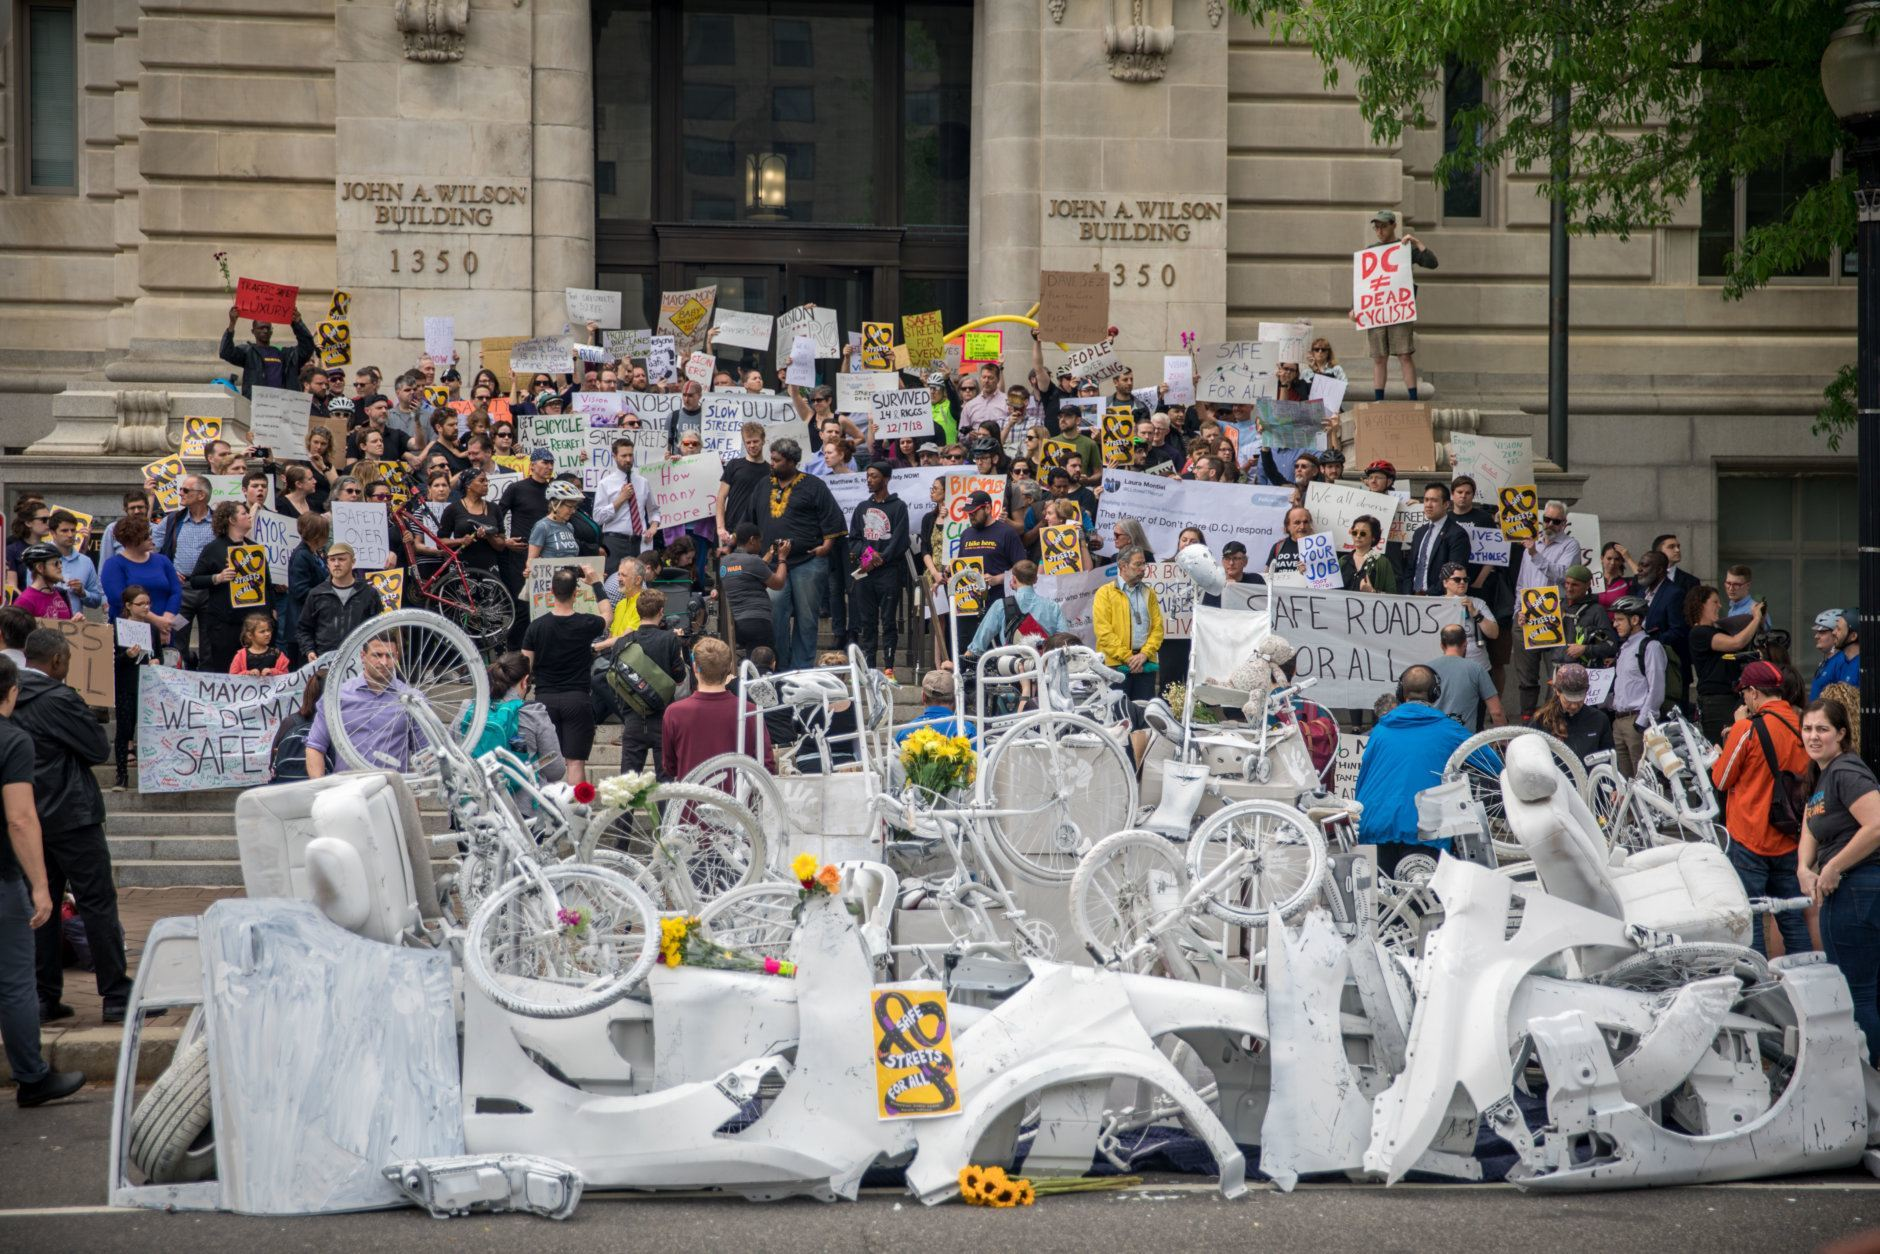 Protesters in front of the Wilson Building say Mayor Bowser needs to do more for safe streets in DC. (Courtesy Aimee Custis/Aimee Custis Photography)